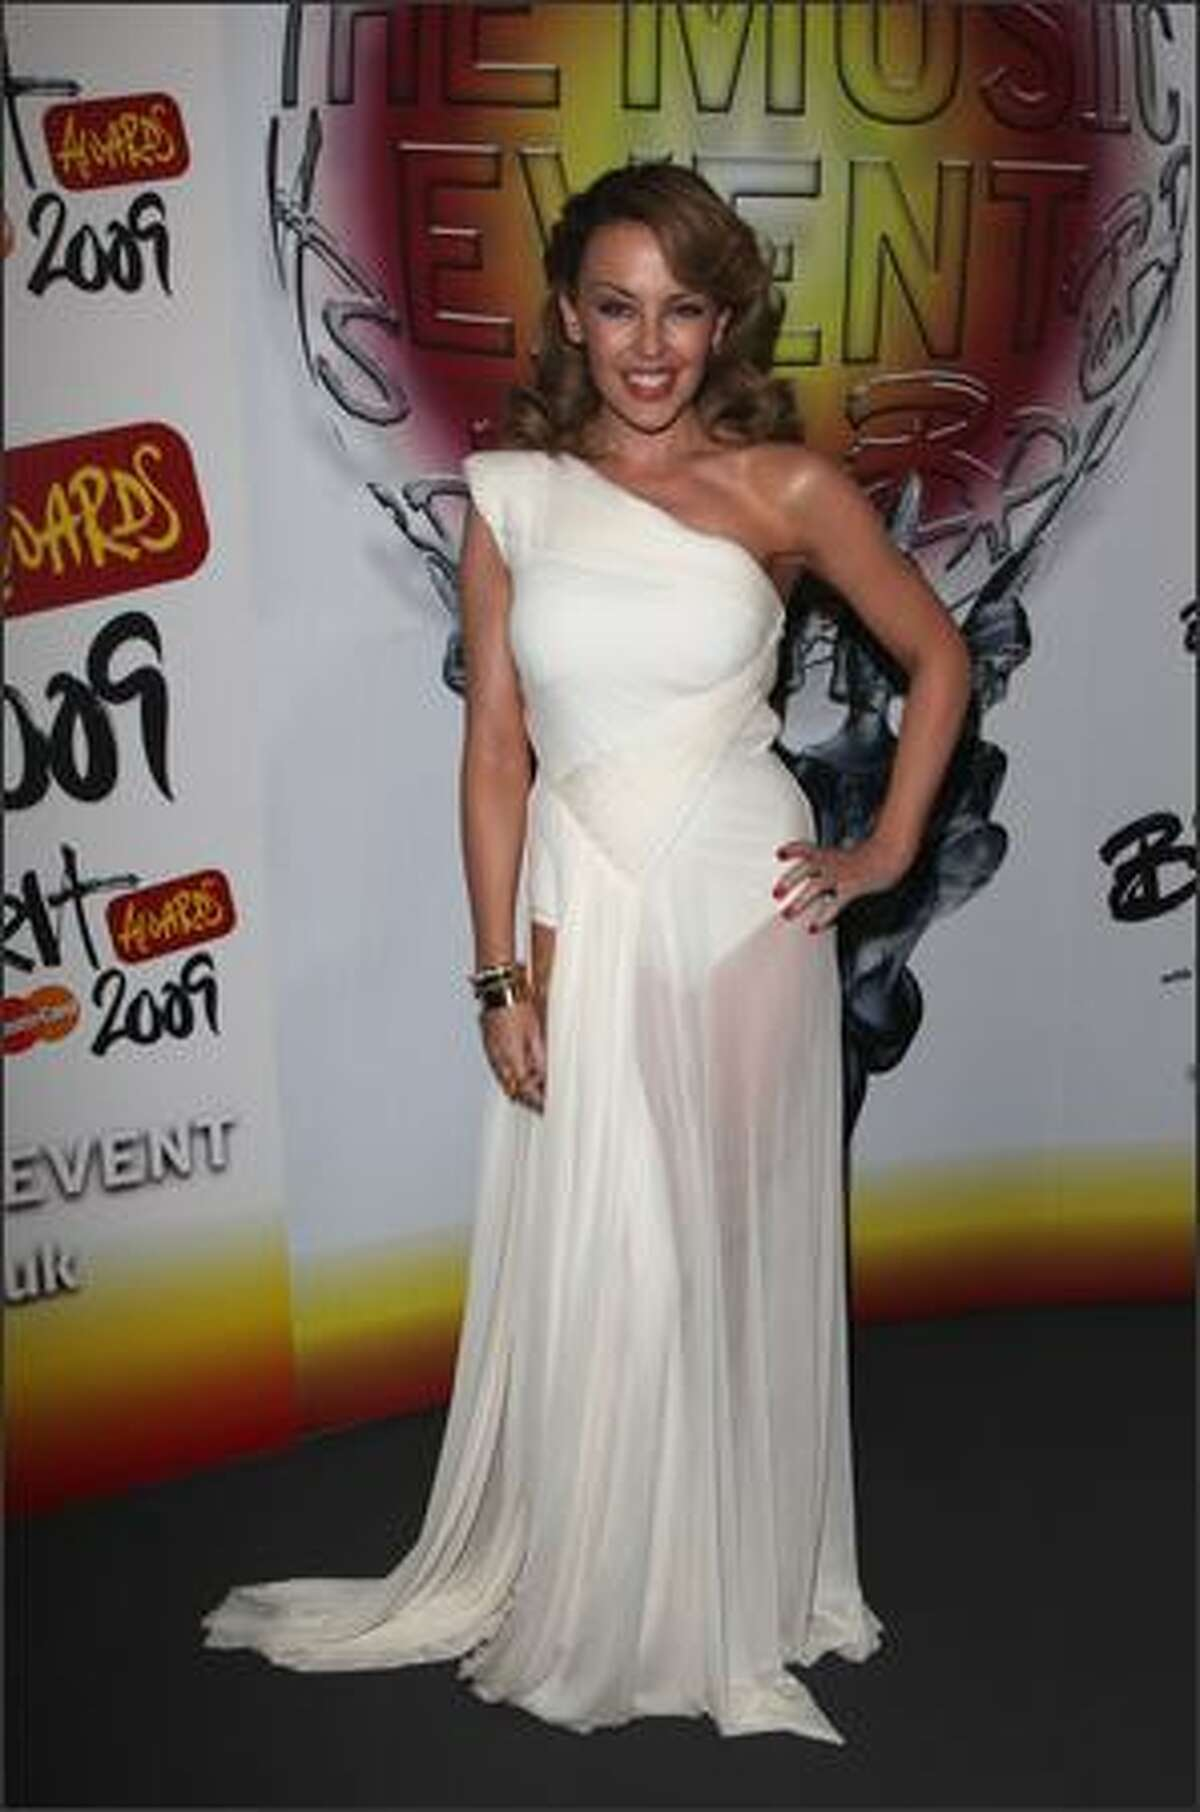 Singer and host Kylie Minogue poses backstage during the Brit Awards 2009 at Earls Court in London, England.